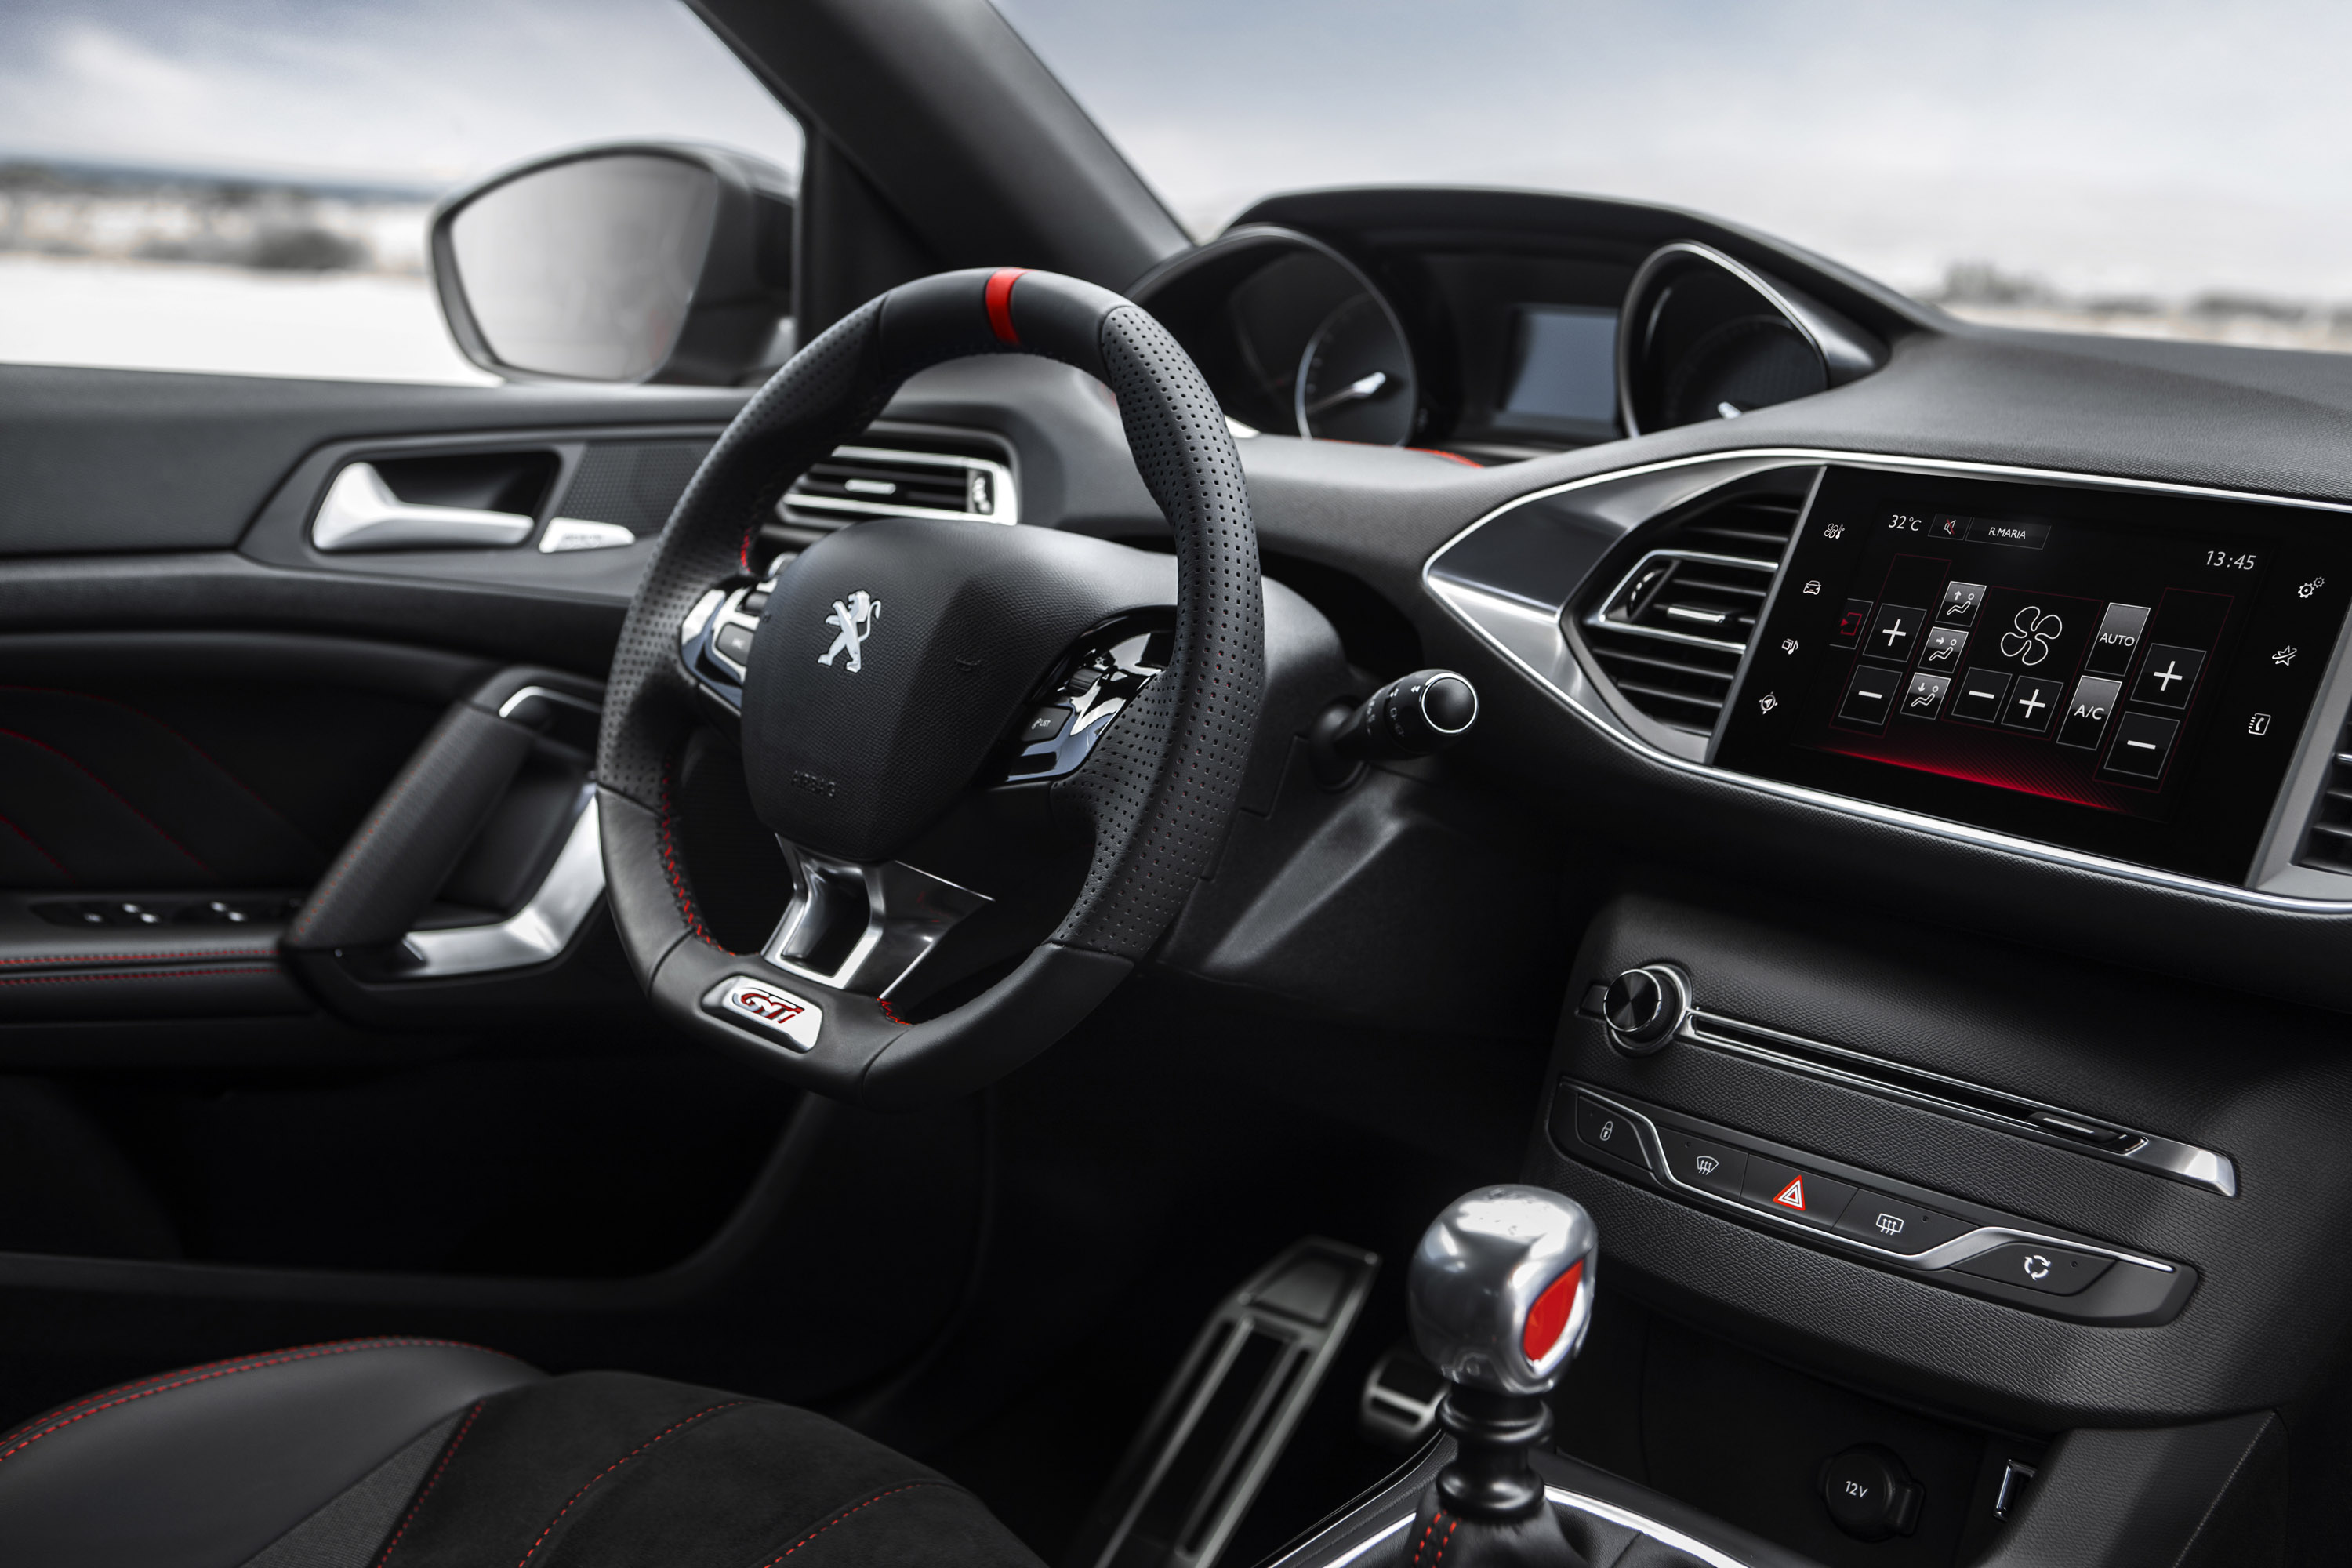 2016 Peugeot 308 Gti Cockpit Interior (View 10 of 15)